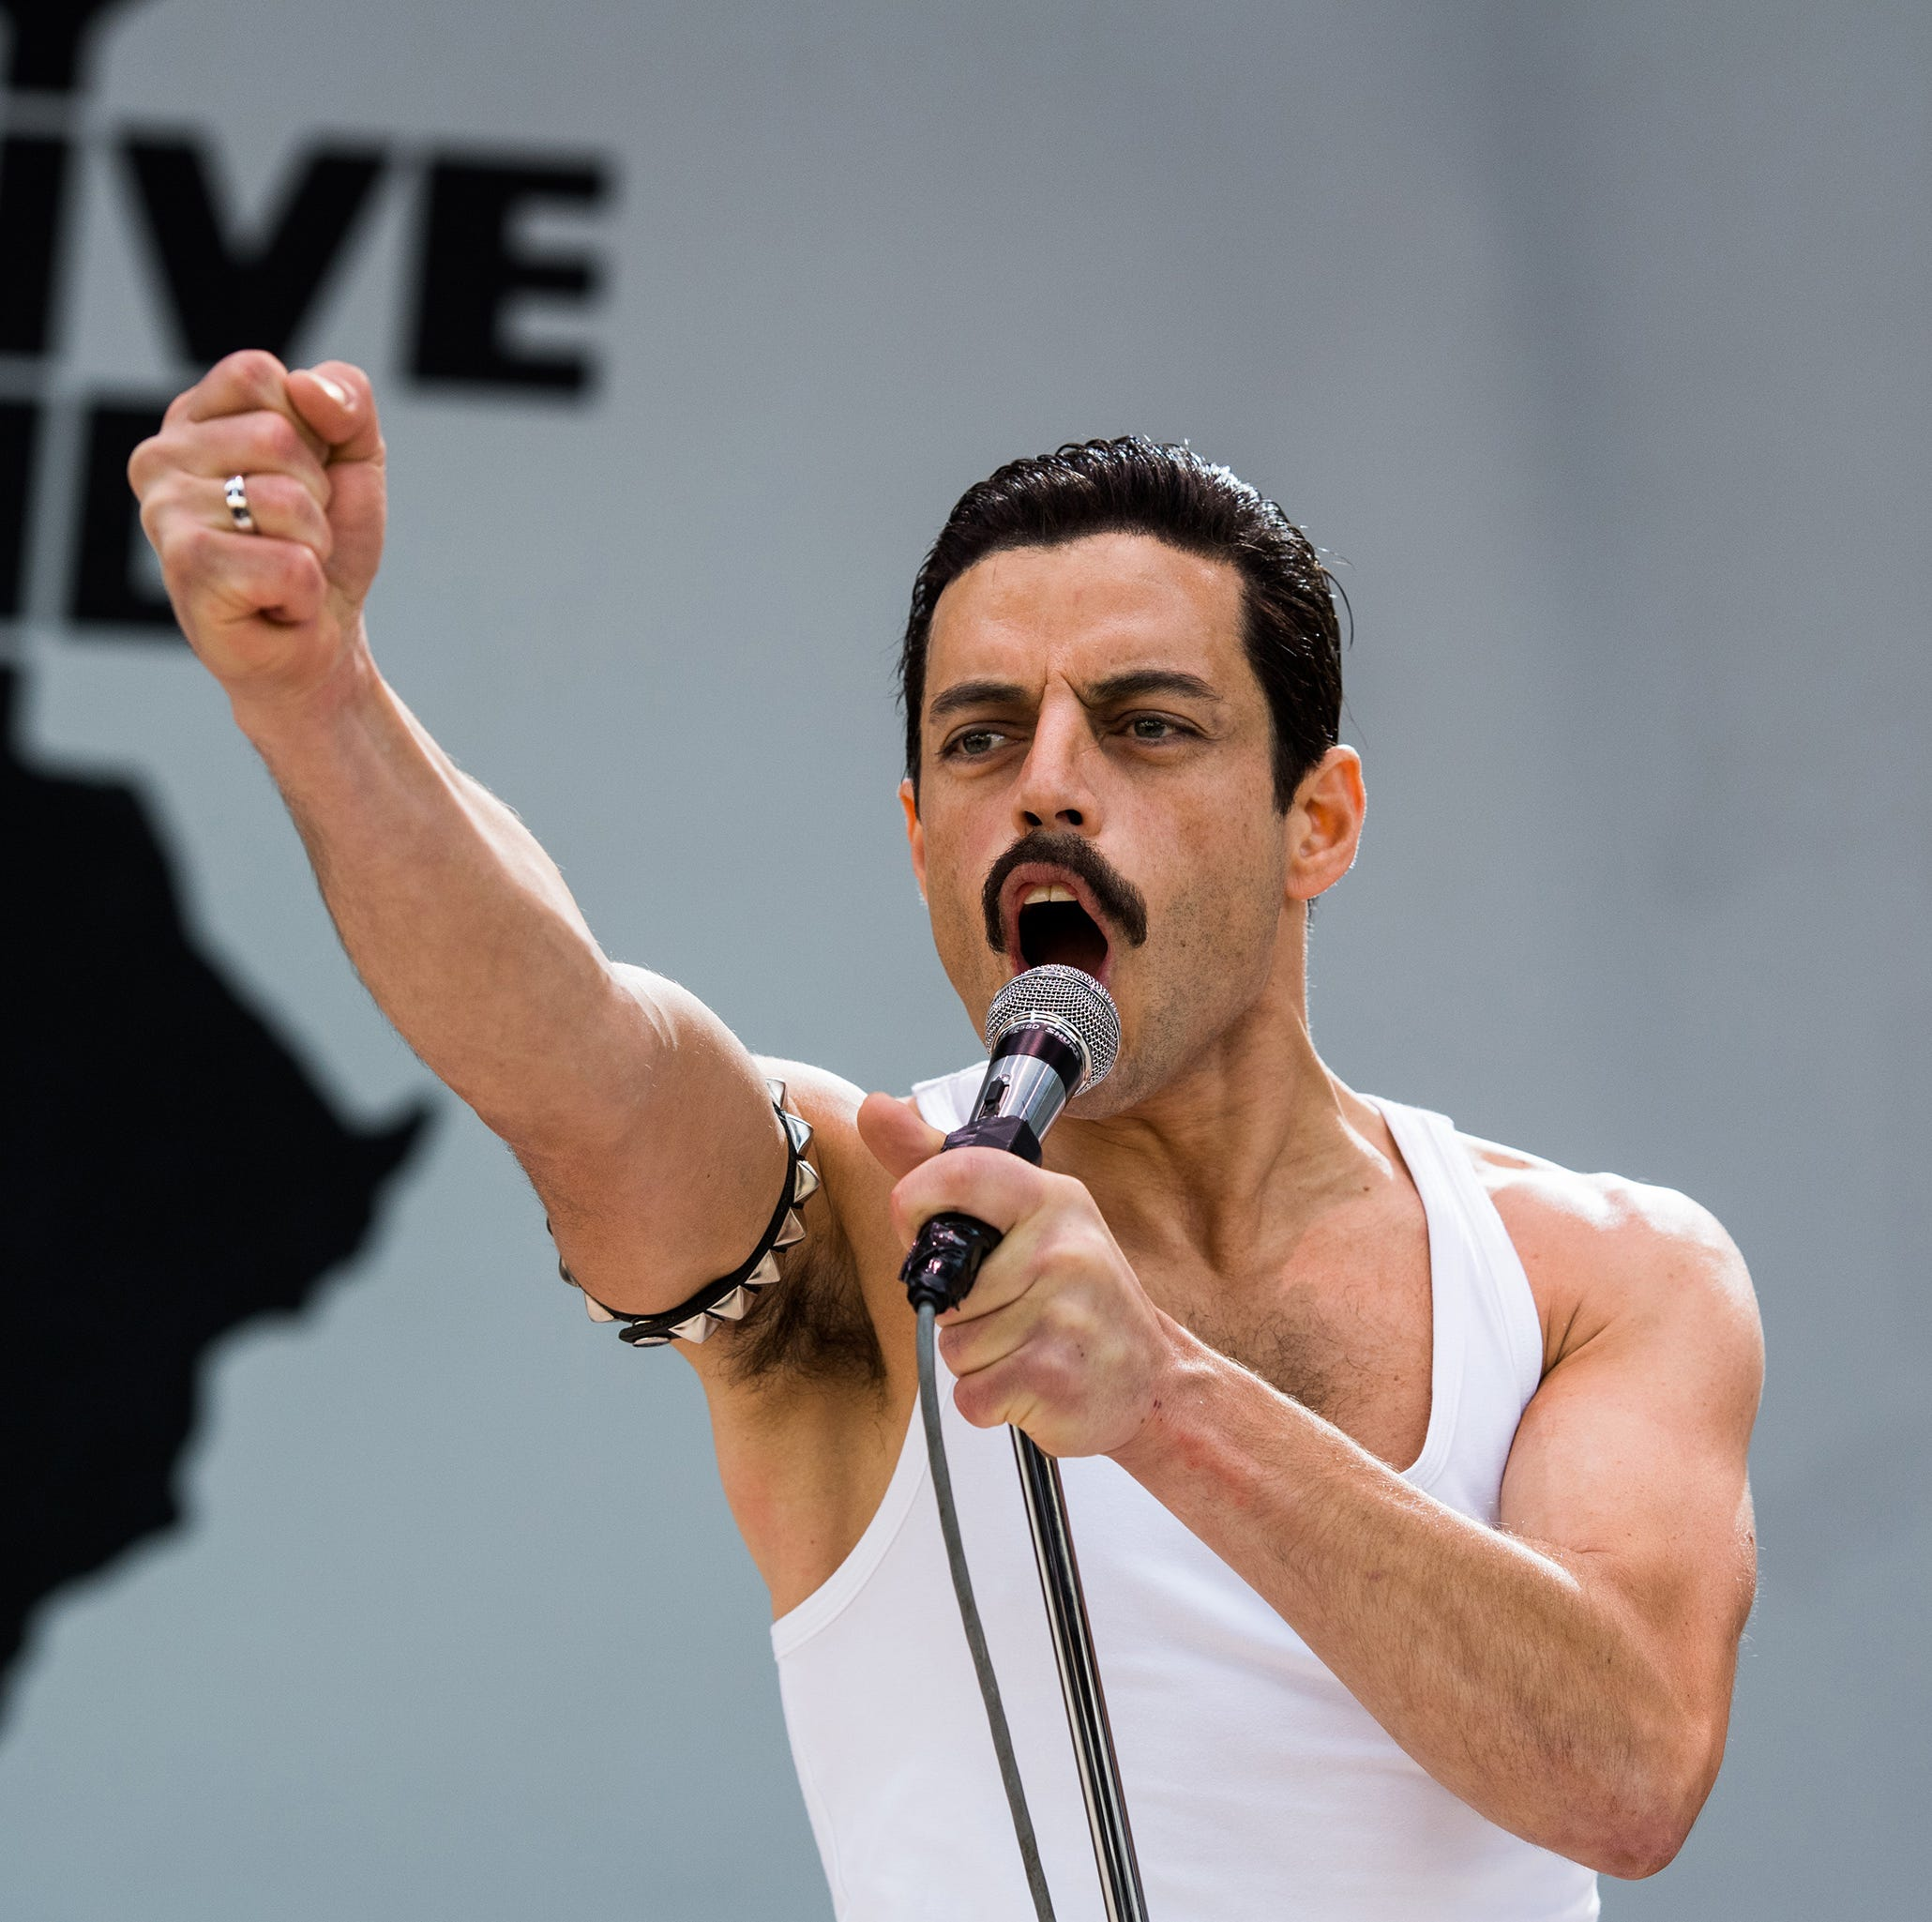 'Bohemian Rhapsody' star Rami Malek to be honored for breakthrough performance as Freddie Mercury